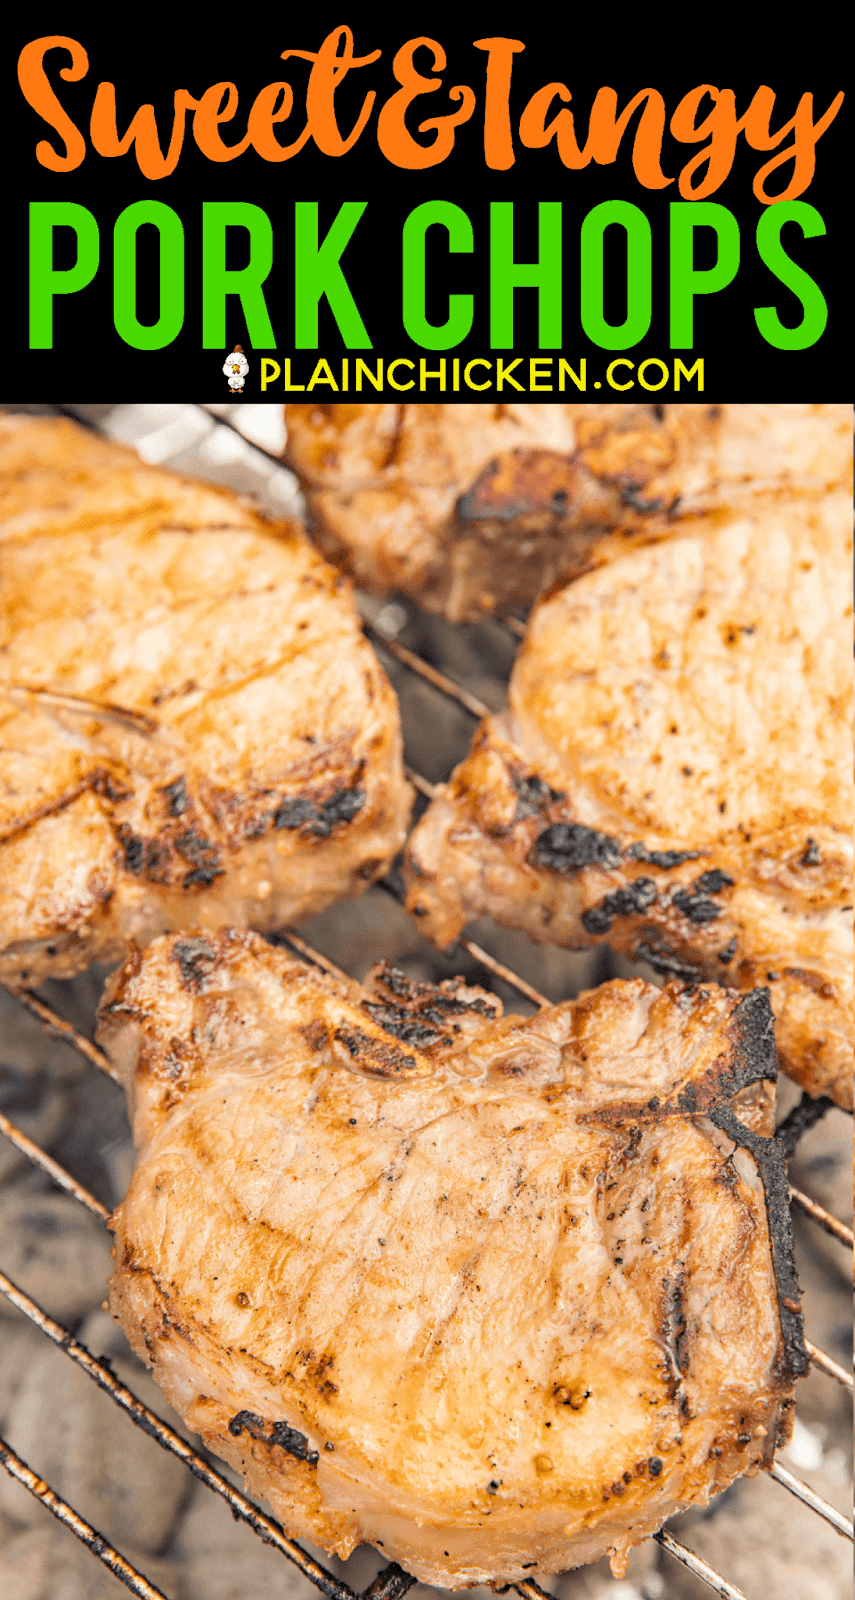 Sweet and Tangy Grilled Pork Chops Recipe - pork chops marinated in cider vinegar, dijon mustard, garlic, lemon juice, lime juice, salt, pepper and brown sugar. THE BEST! We make this at least twice a month!! Can let the pork chops marinate all night in the refrigerator. They are better the longer they marinate. These are our all-time favorite pork chops! #grilling #pork #porkchops #grill